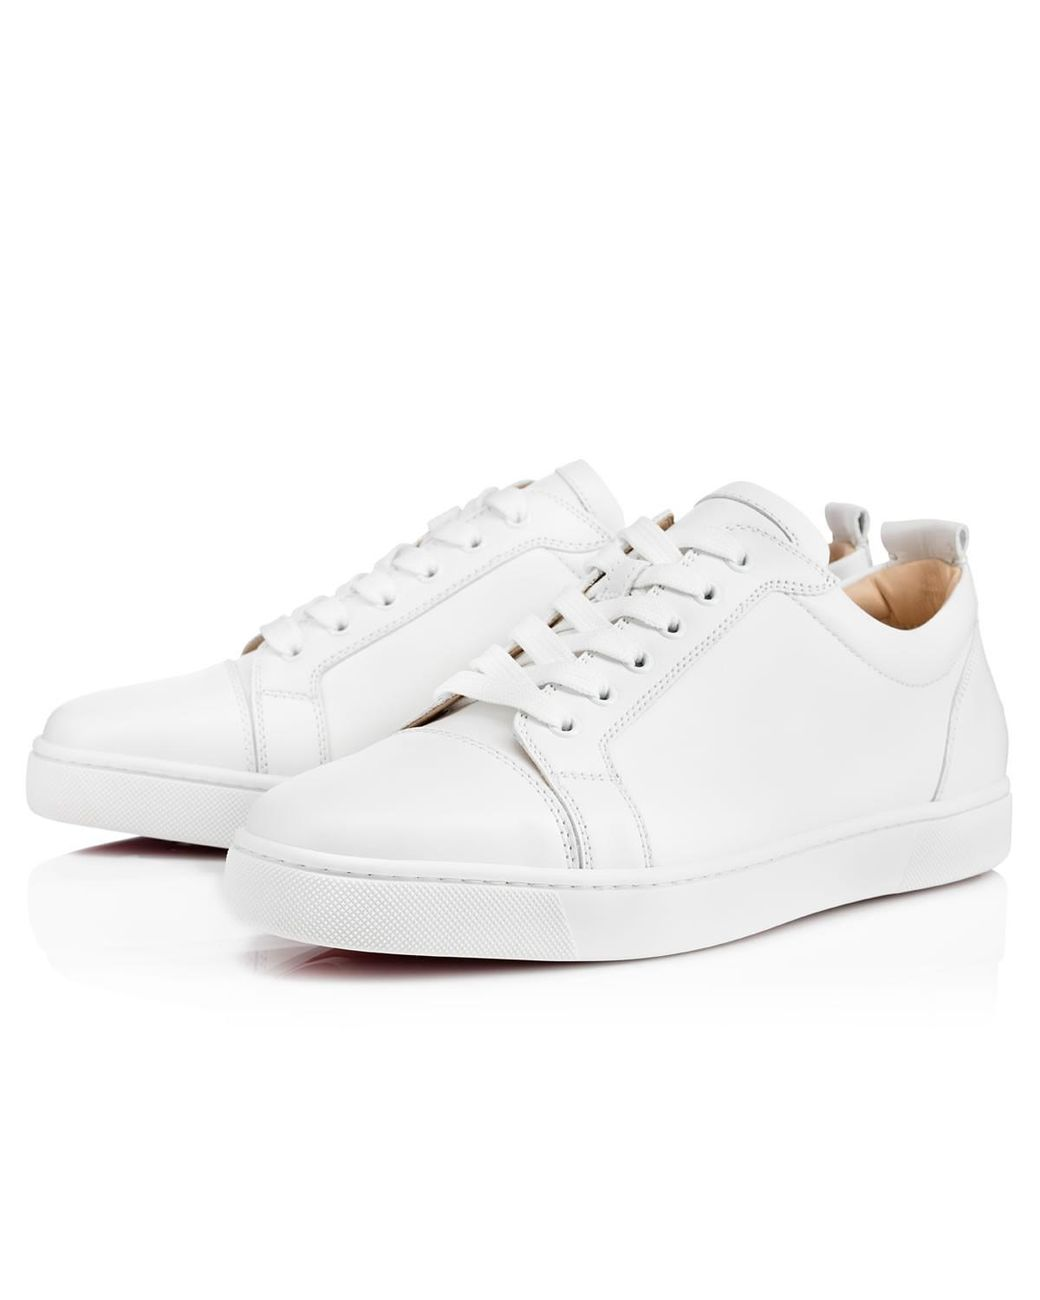 cda98140b582 Christian Louboutin Louis Junior Leather Low-Top Sneakers in White for Men  - Lyst